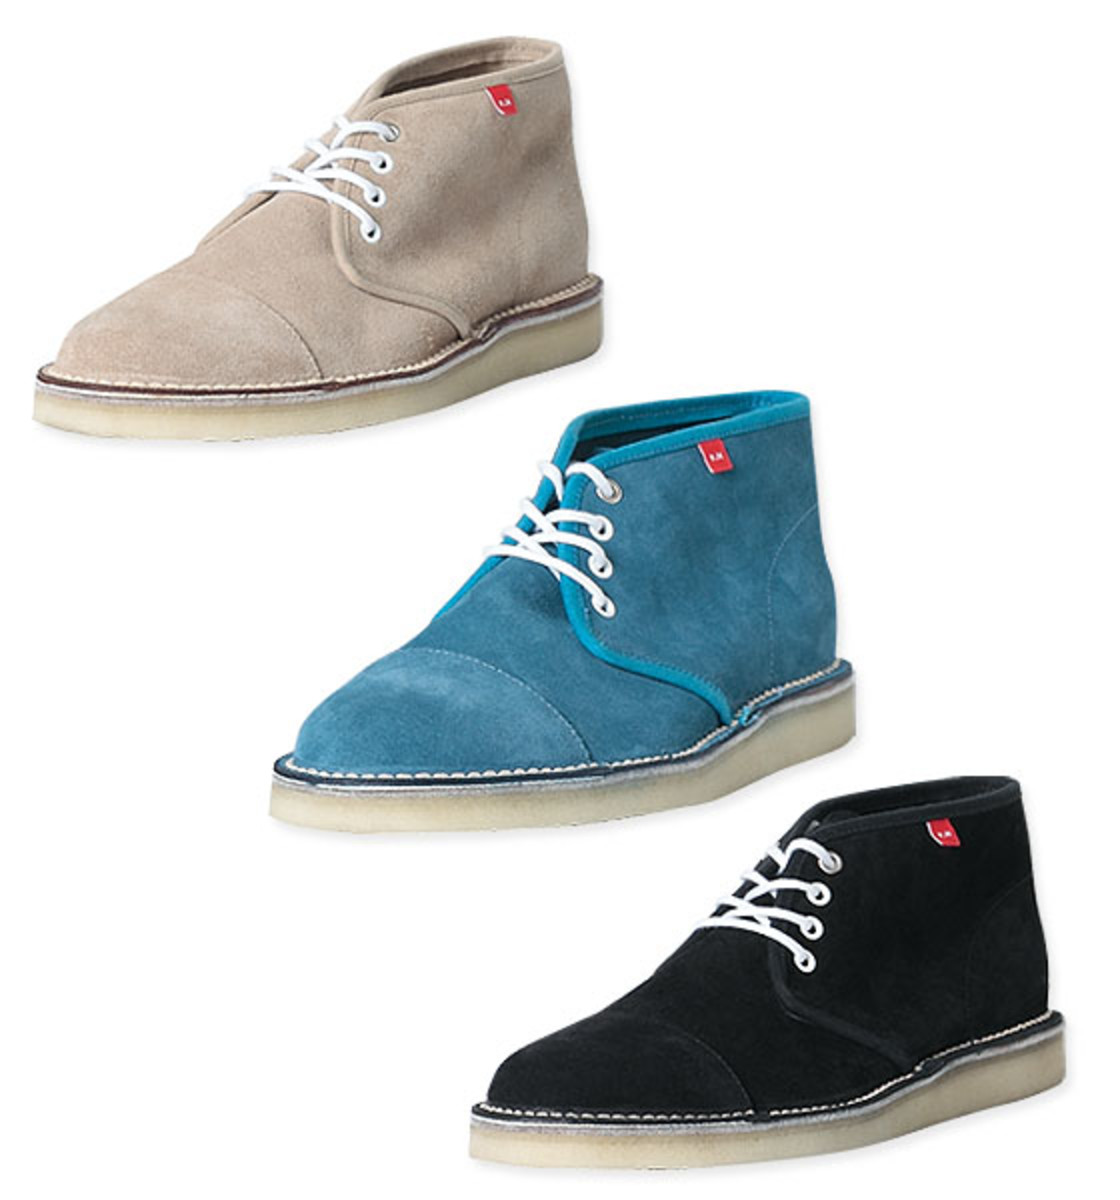 Warfield Shoes